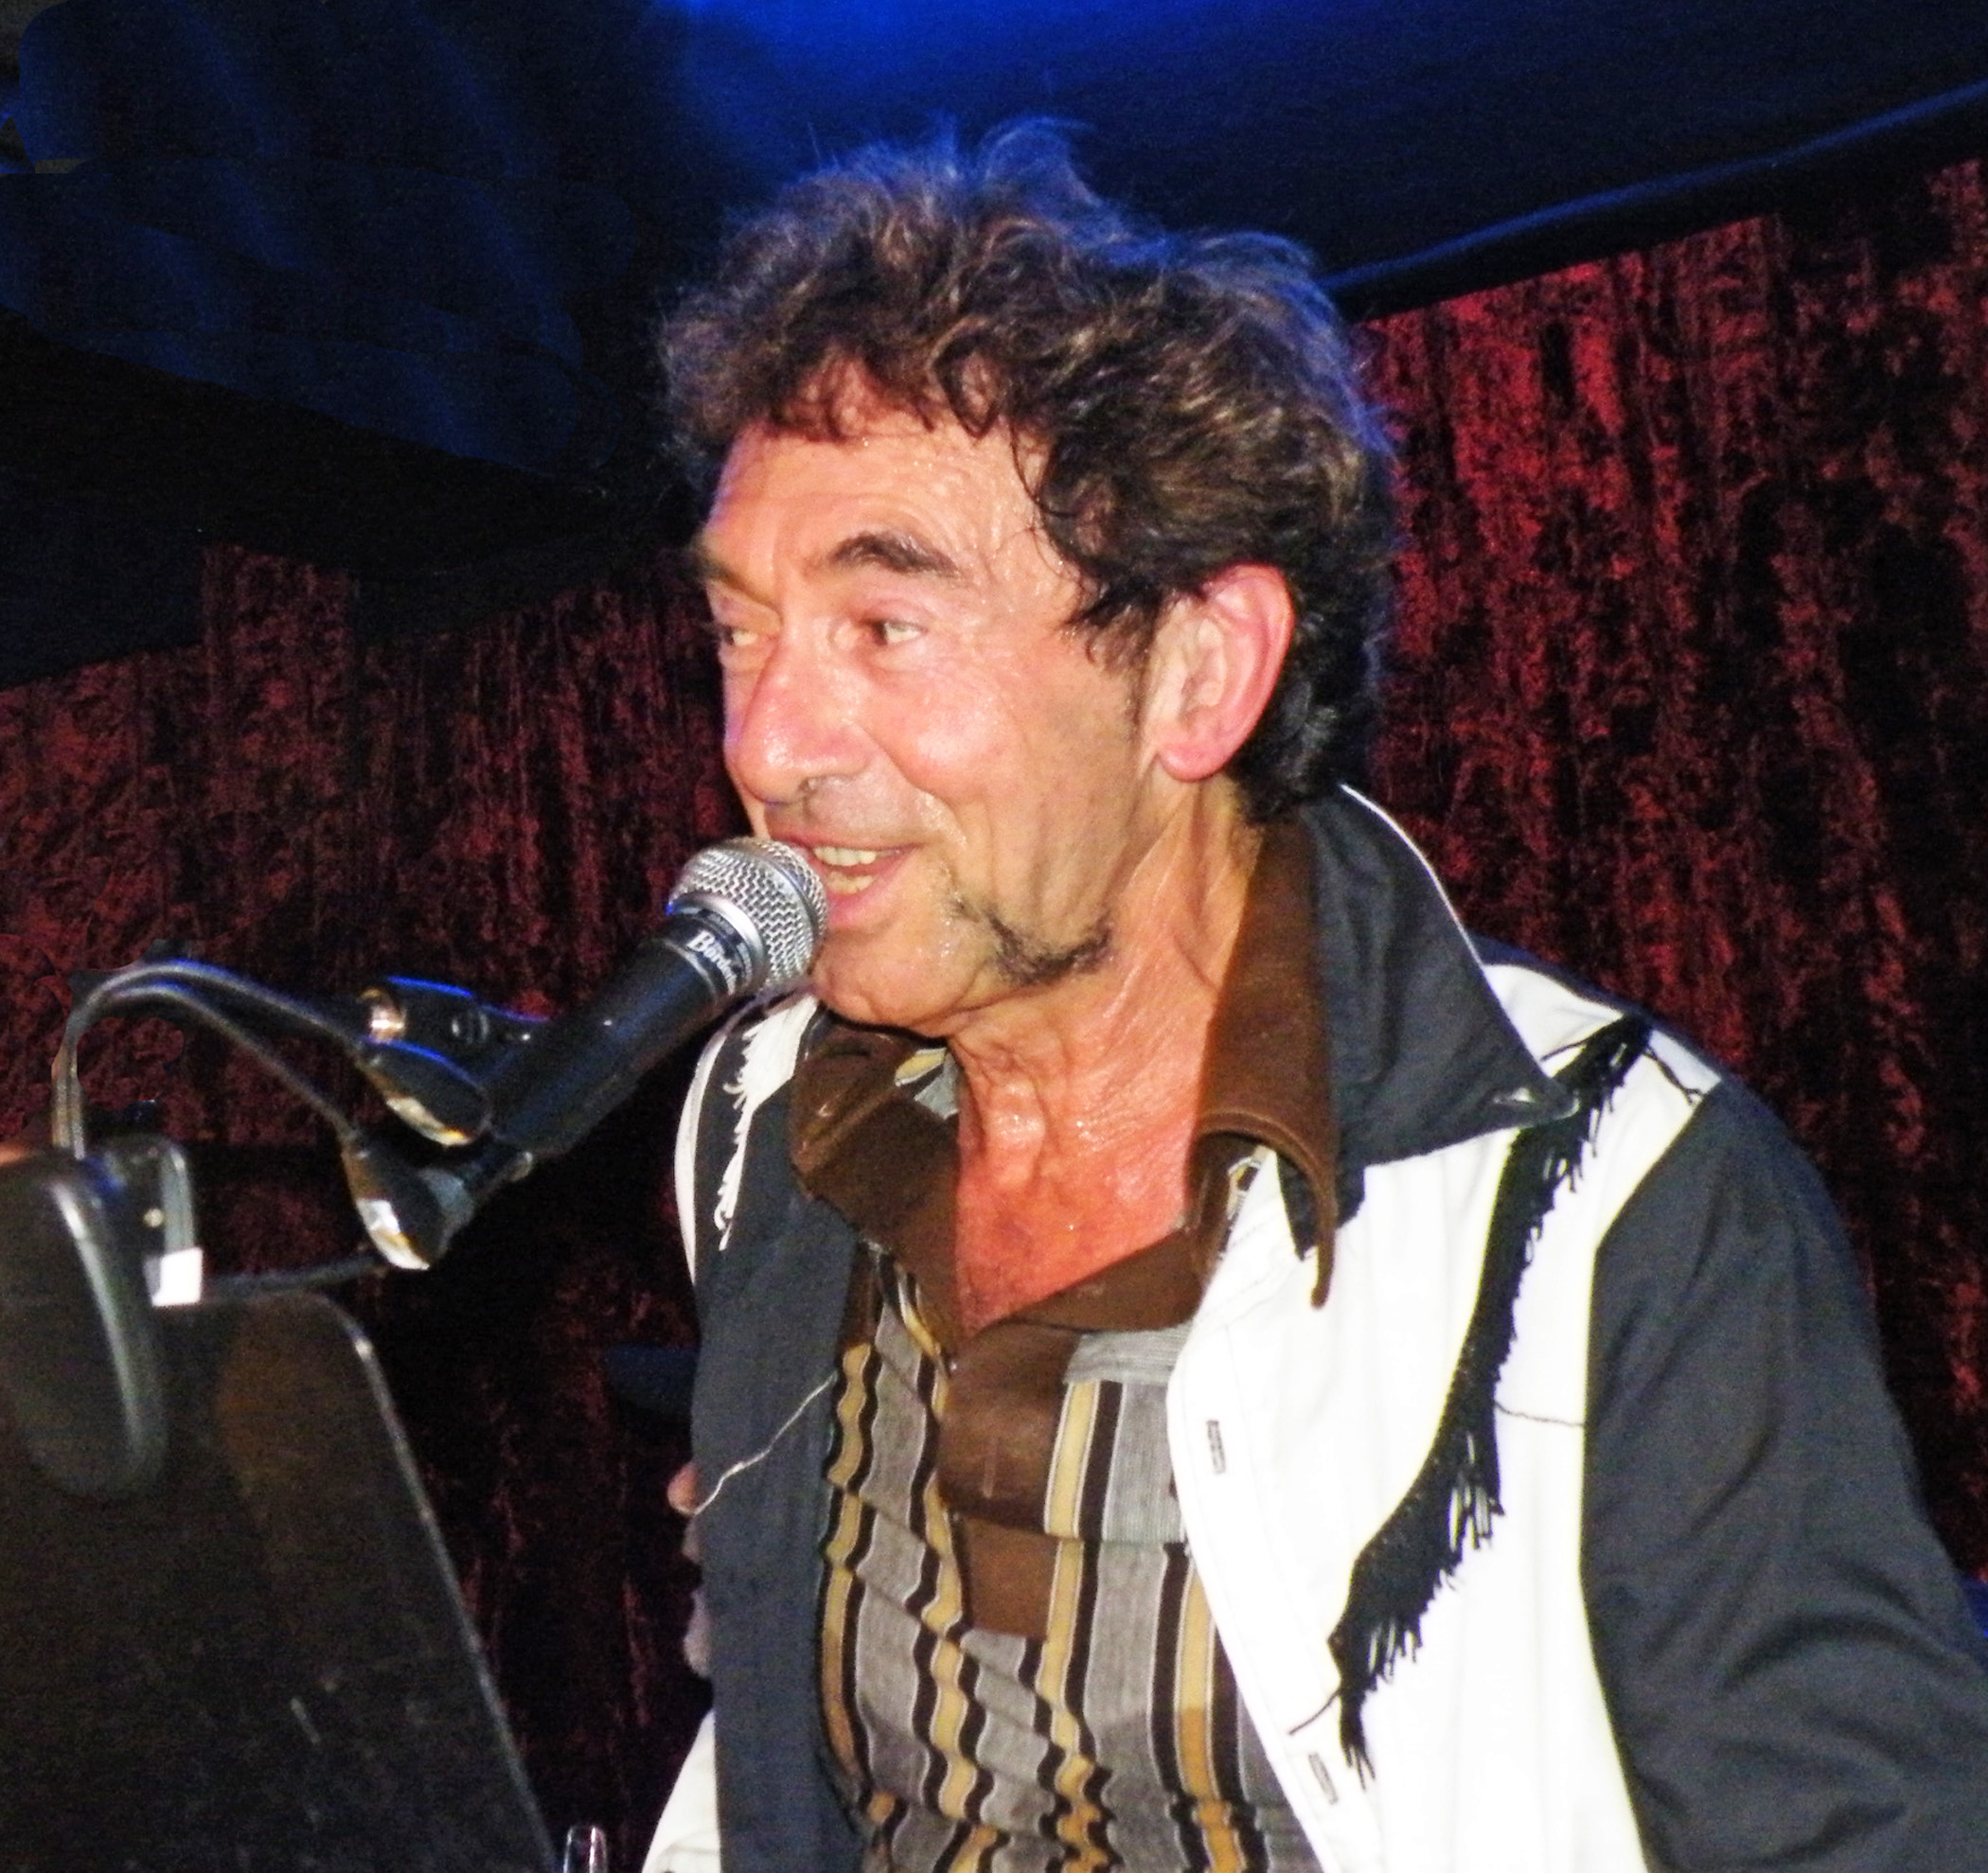 ** Jona Lewie at Tales From The Woods Rock'n'Roll Heritage Show 11 **